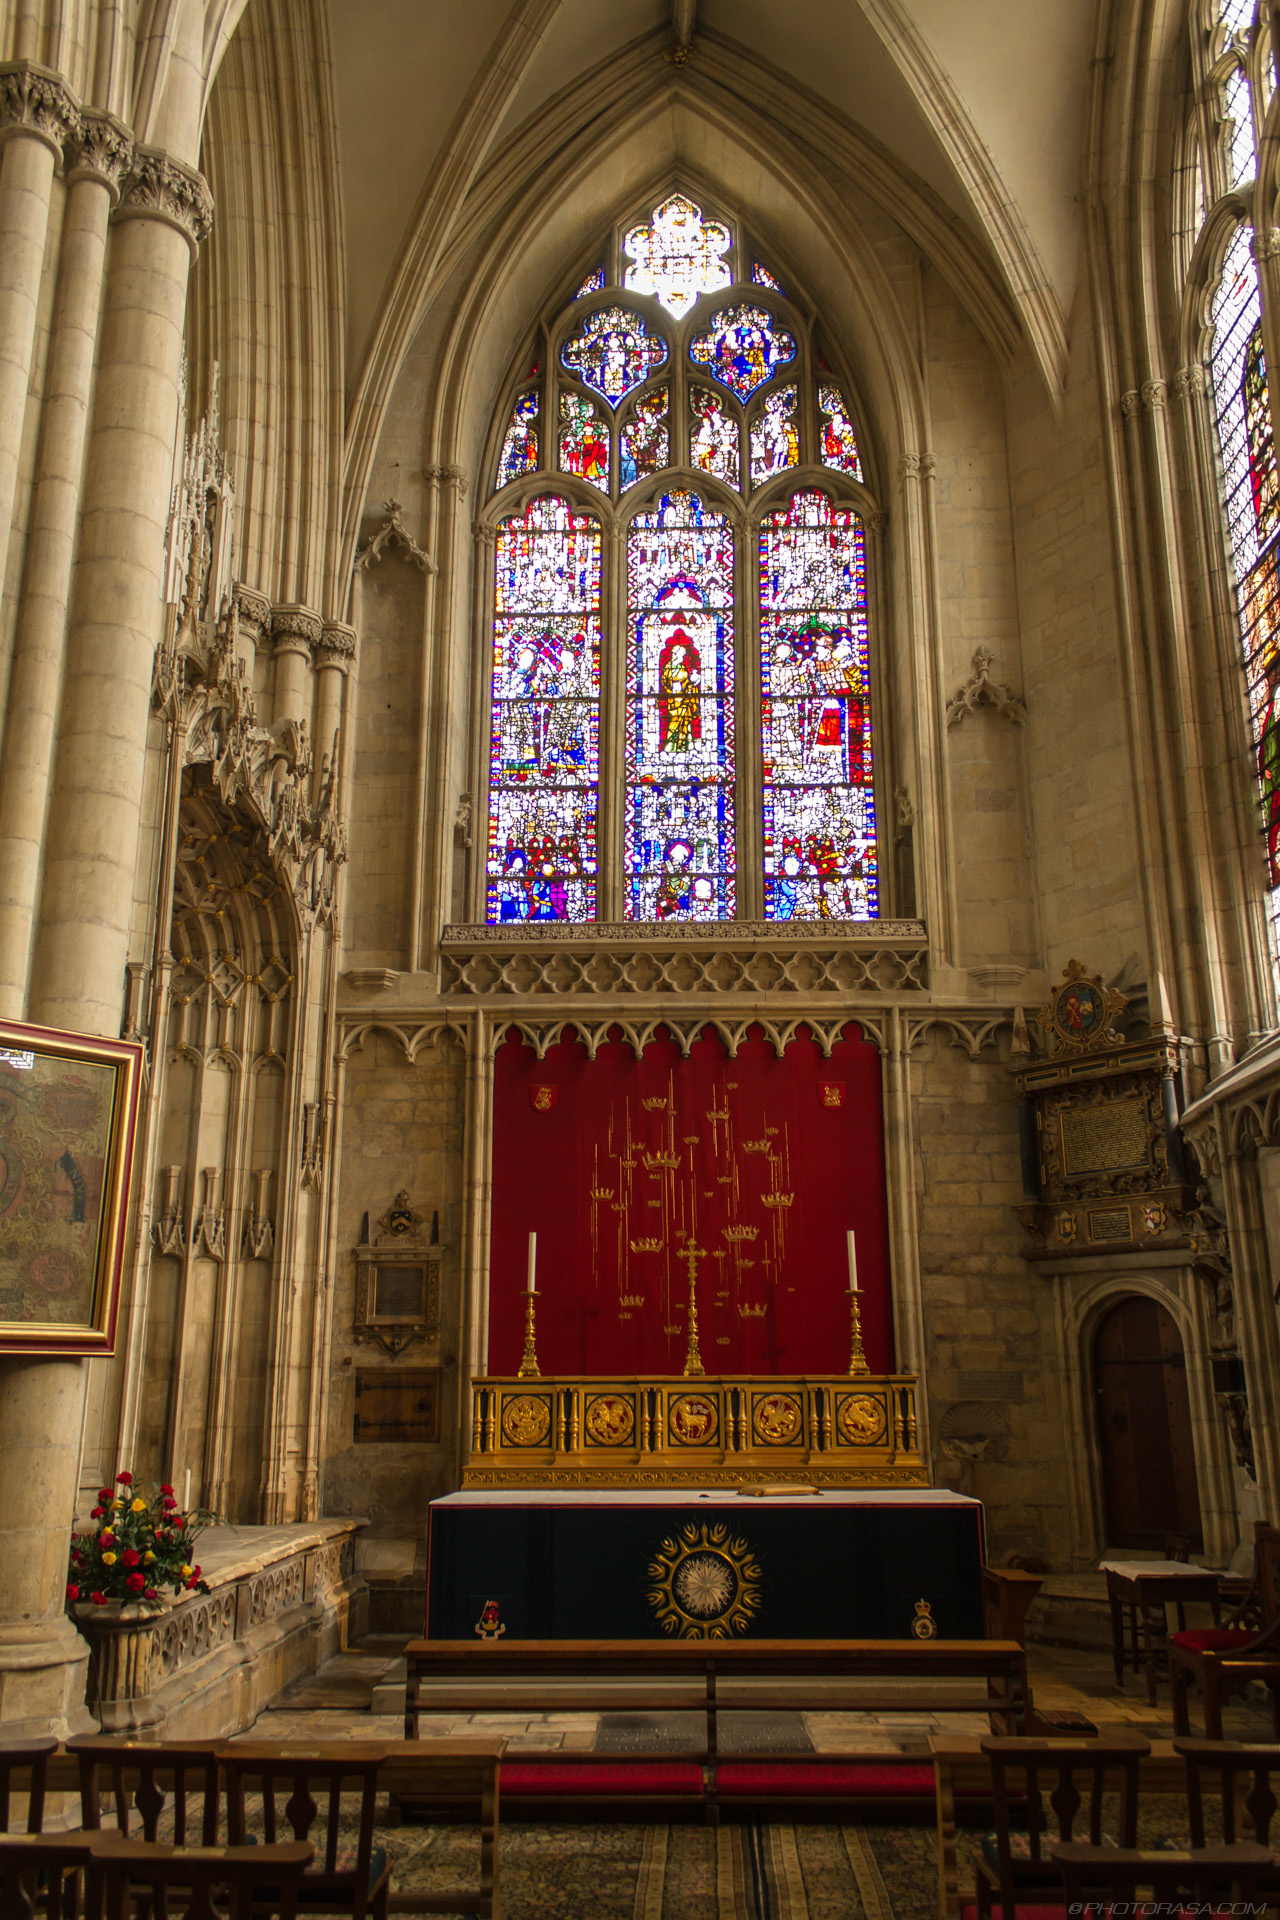 http://photorasa.com/places/yorkminster-cathedral/attachment/all-saints-chapel/